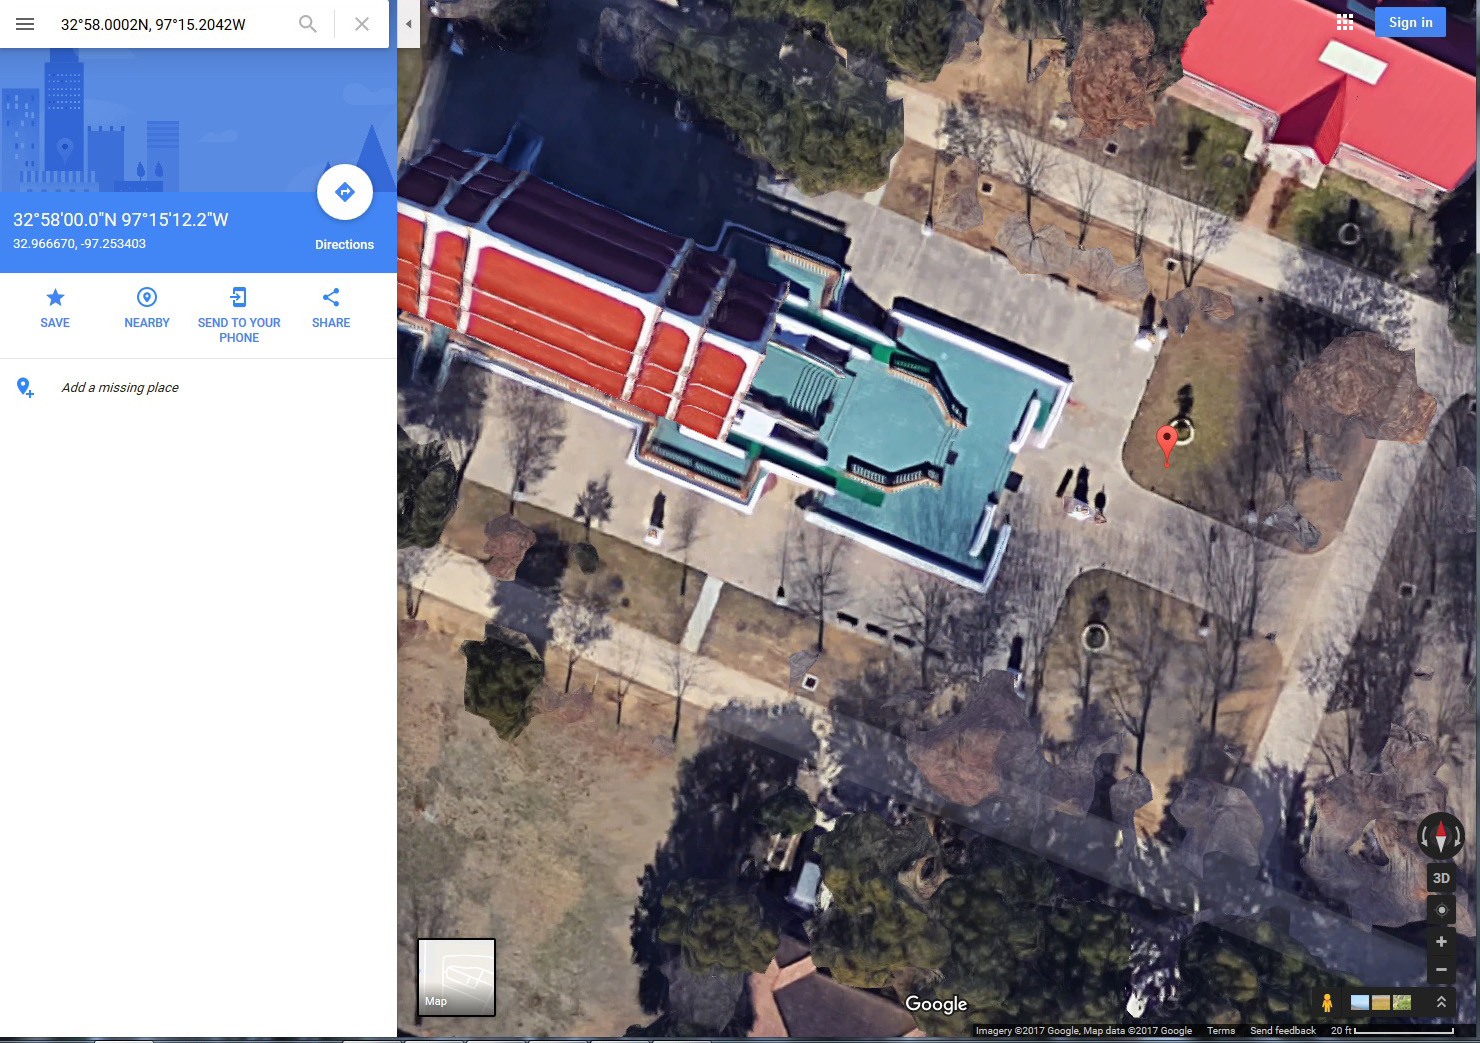 Canon 5D Mark III GPS coordinates (red pin) in Google Maps. Buddhist Temple, Keller Texas.